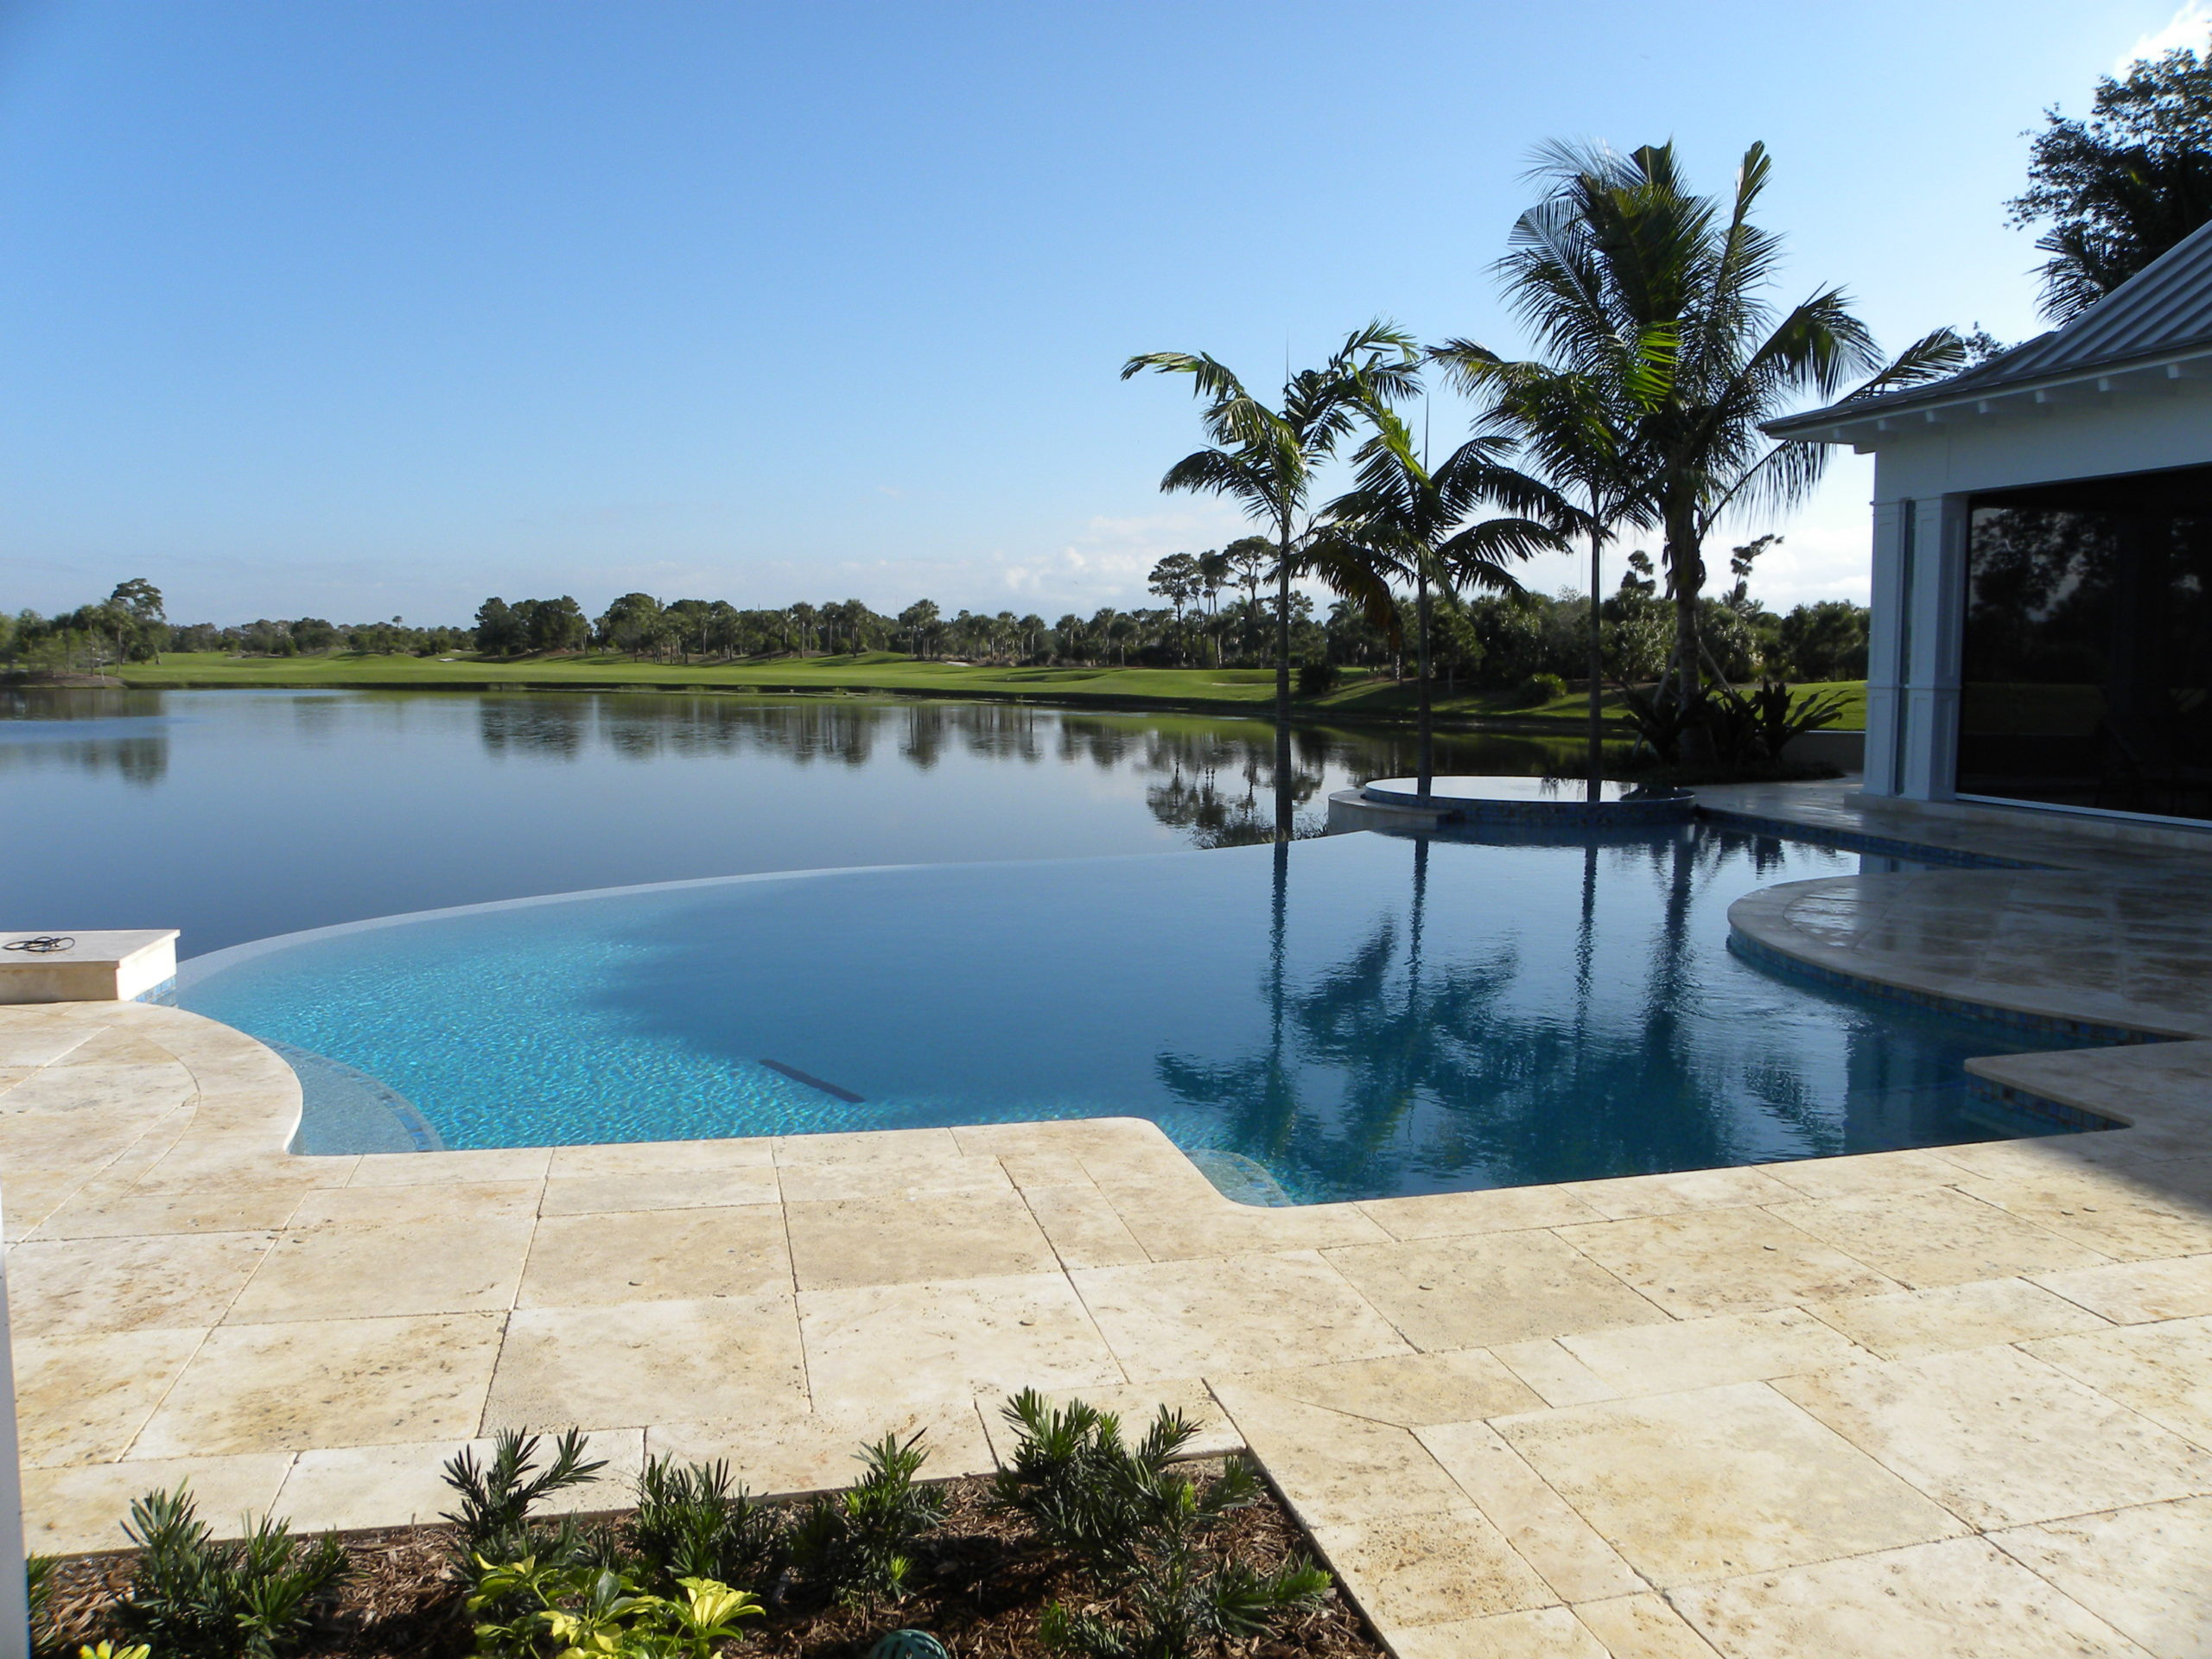 rhr pools of jupiter fl organically shaped pool with infinity edge overlooking the water